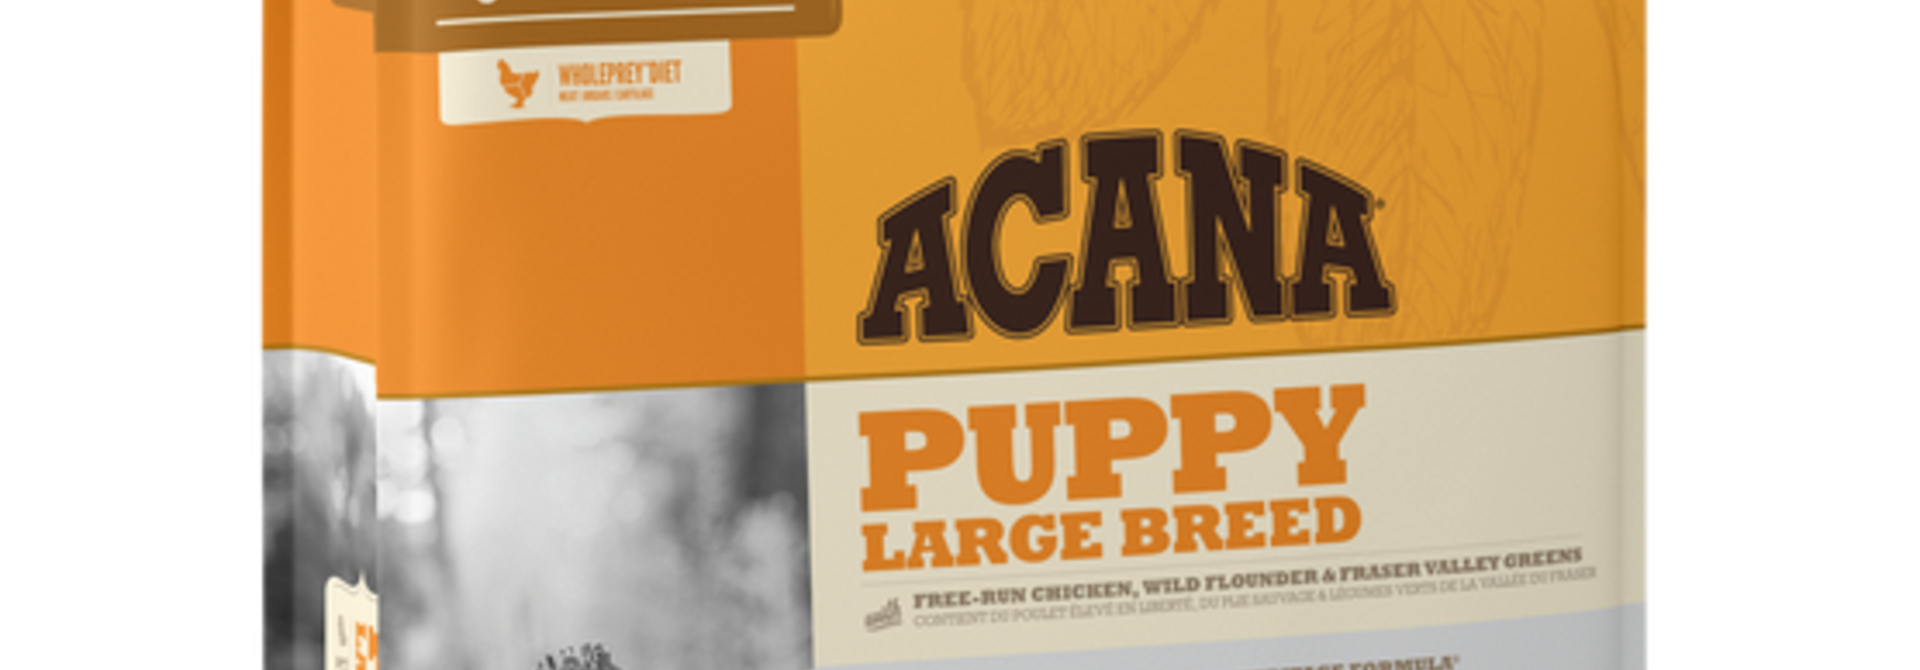 ACH Large Breed Puppy